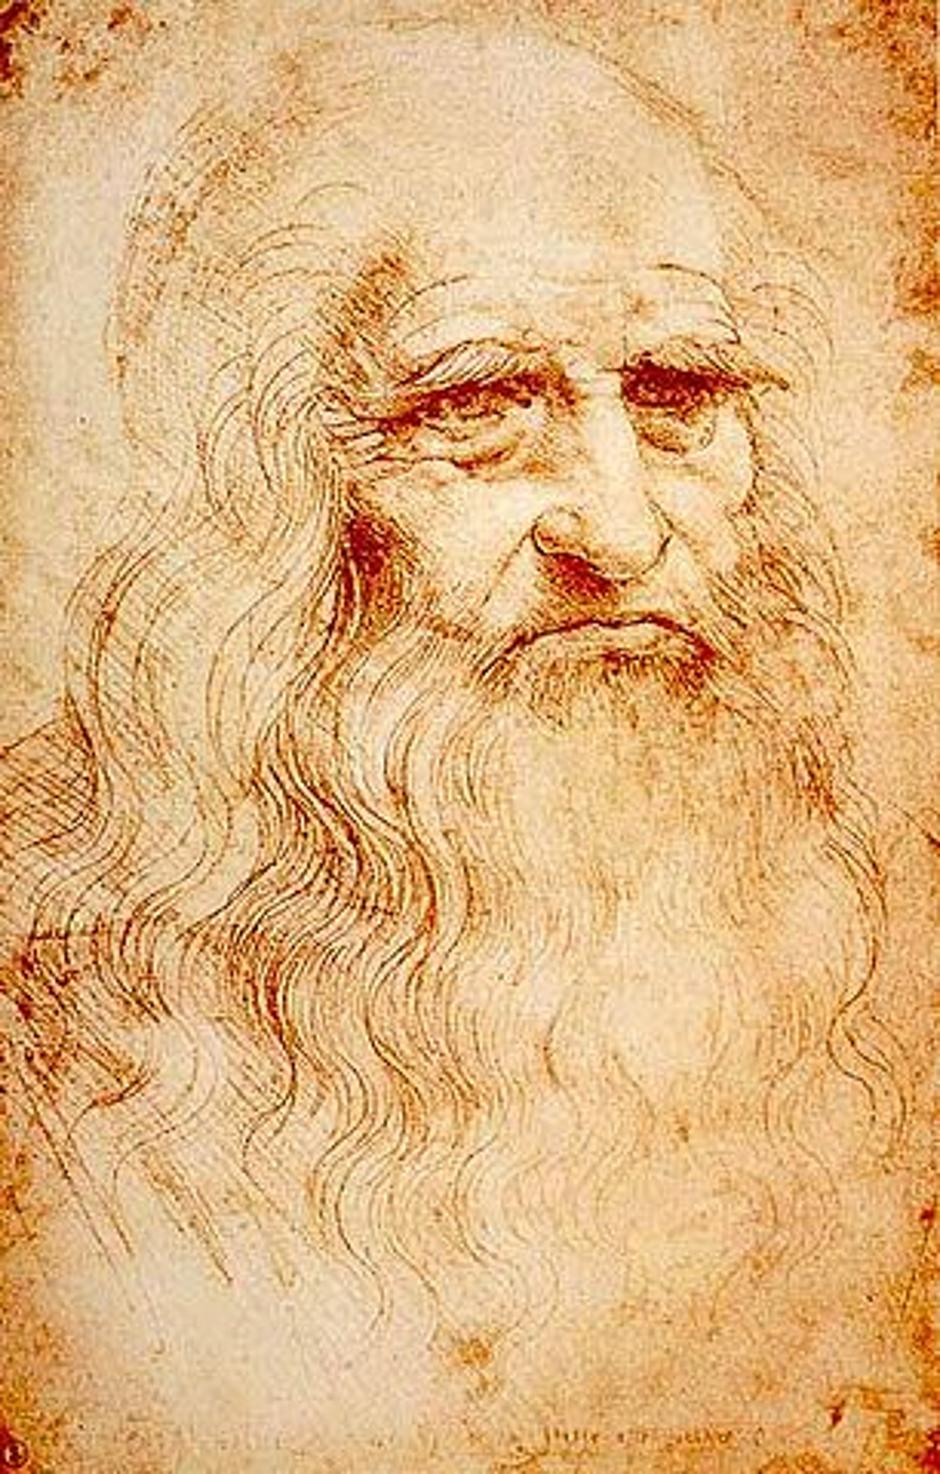 Leonardo da Vinci | Author: Wikipedia